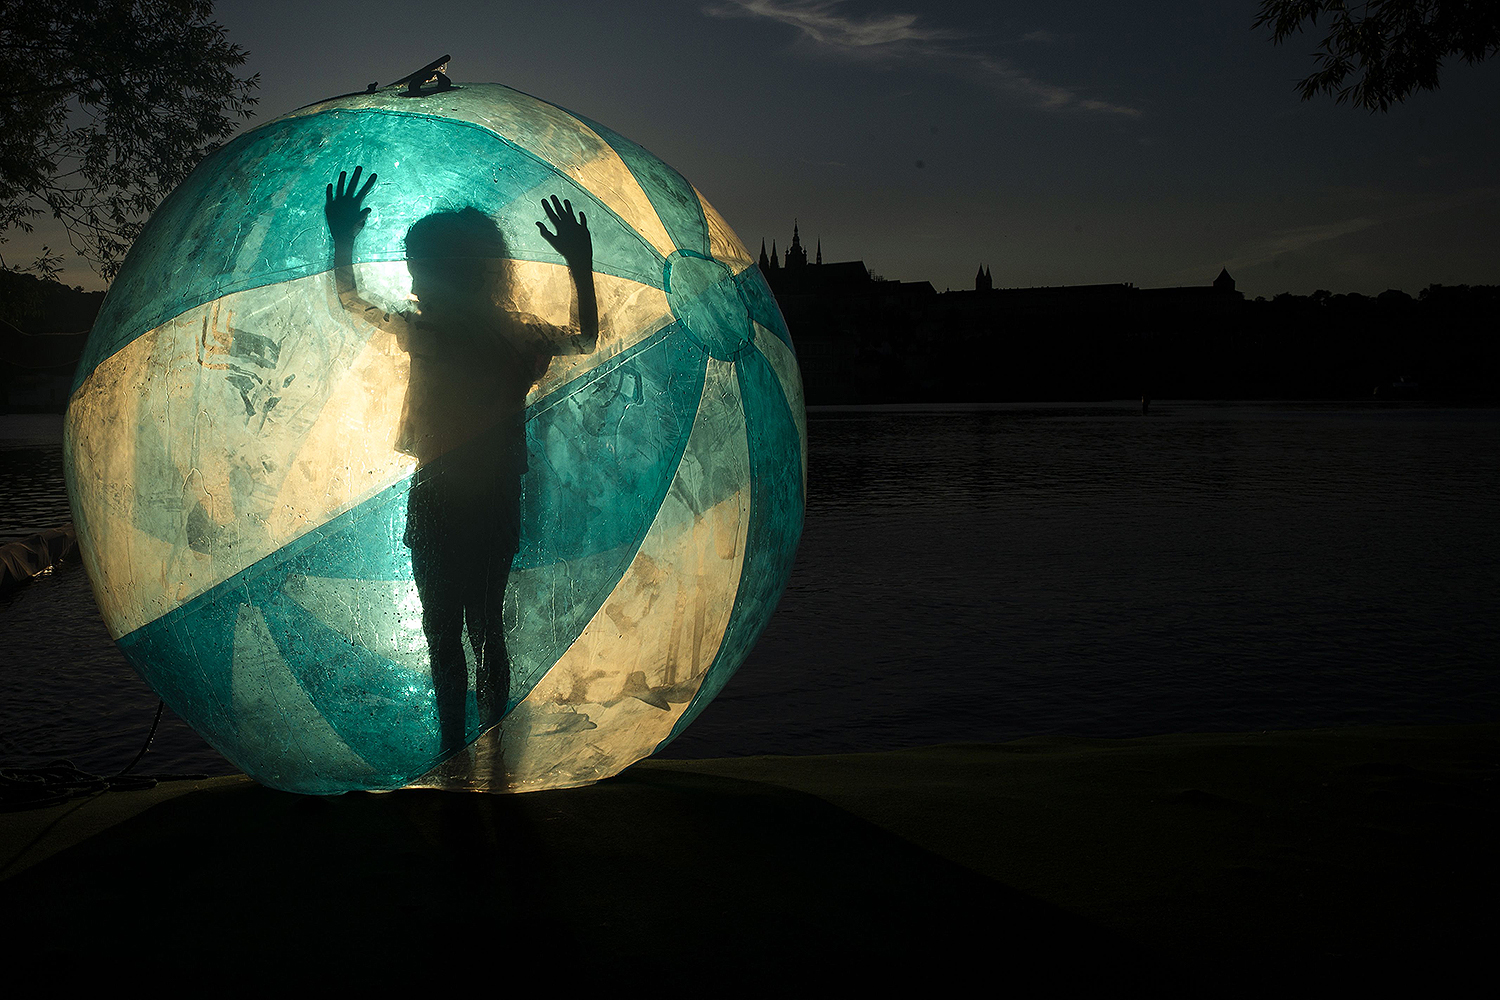 A tourist stands inside a zorb ball on the banks of Vltava River in Prague on July 13. MICHAL CIZEK/AFP via Getty Images